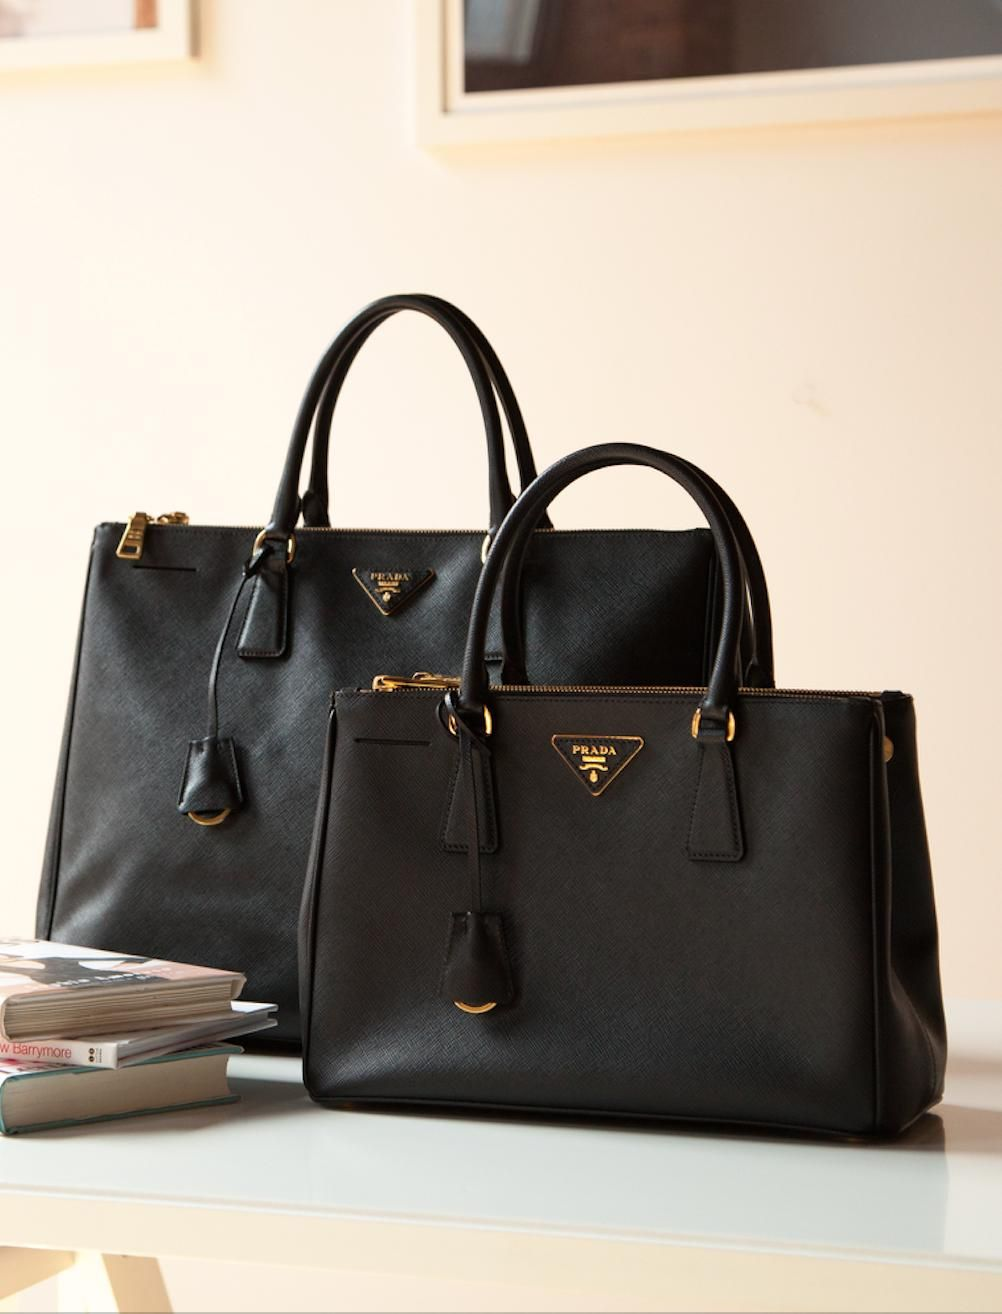 8b93319279c1 Large and small black Prada tote in saffiano leather.